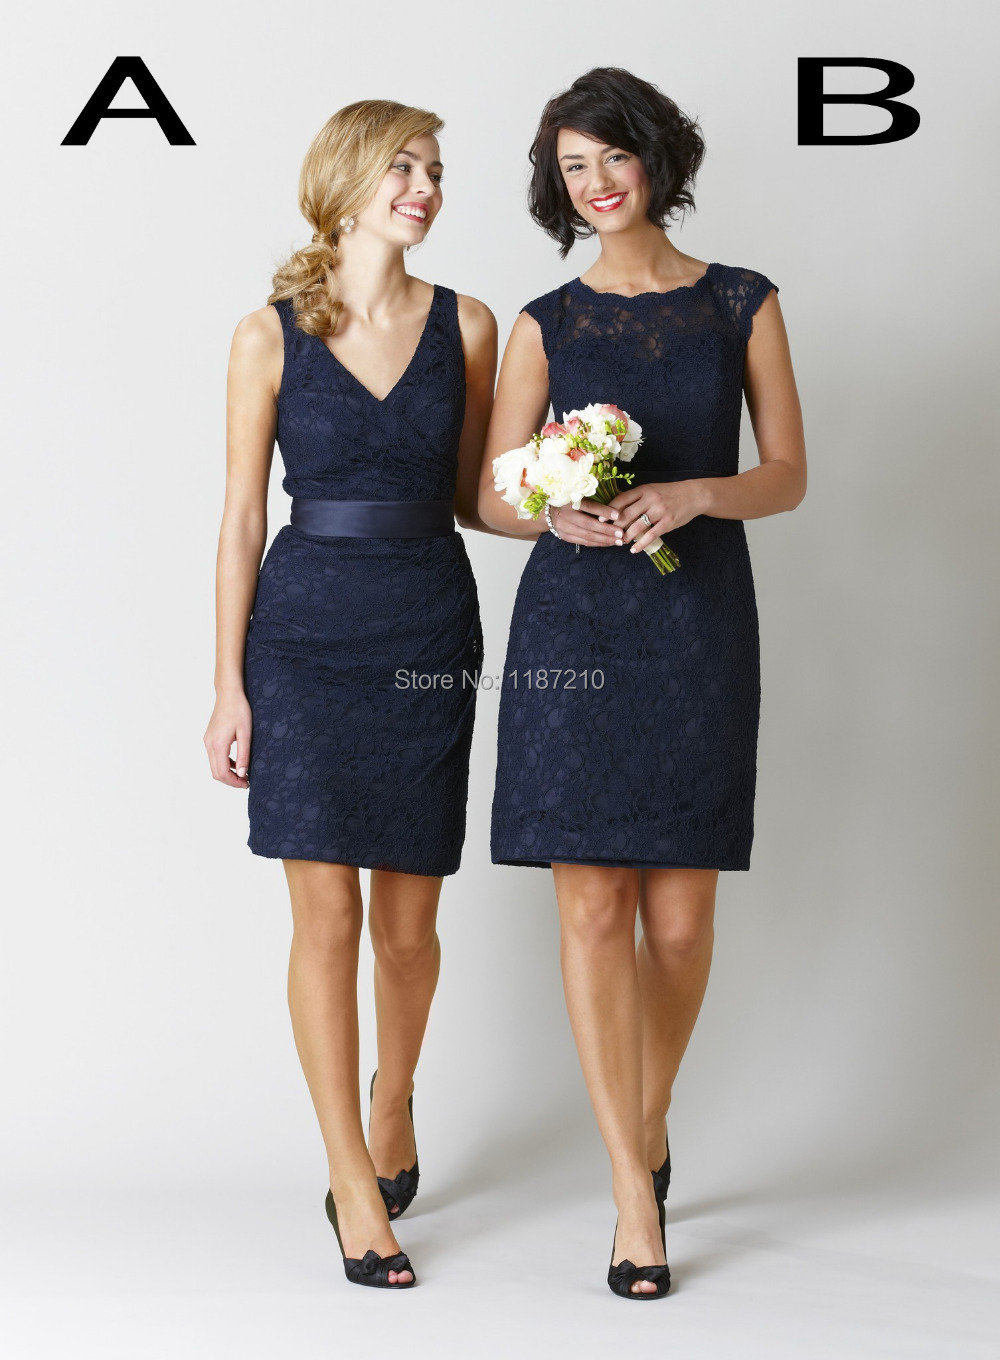 2015 new navy blue lace short bridesmaid dresses cheap formal 2015 new navy blue lace short bridesmaid dresses cheap formal party prom dress with backless knee length bow in bridesmaid dresses from weddings events on ombrellifo Gallery